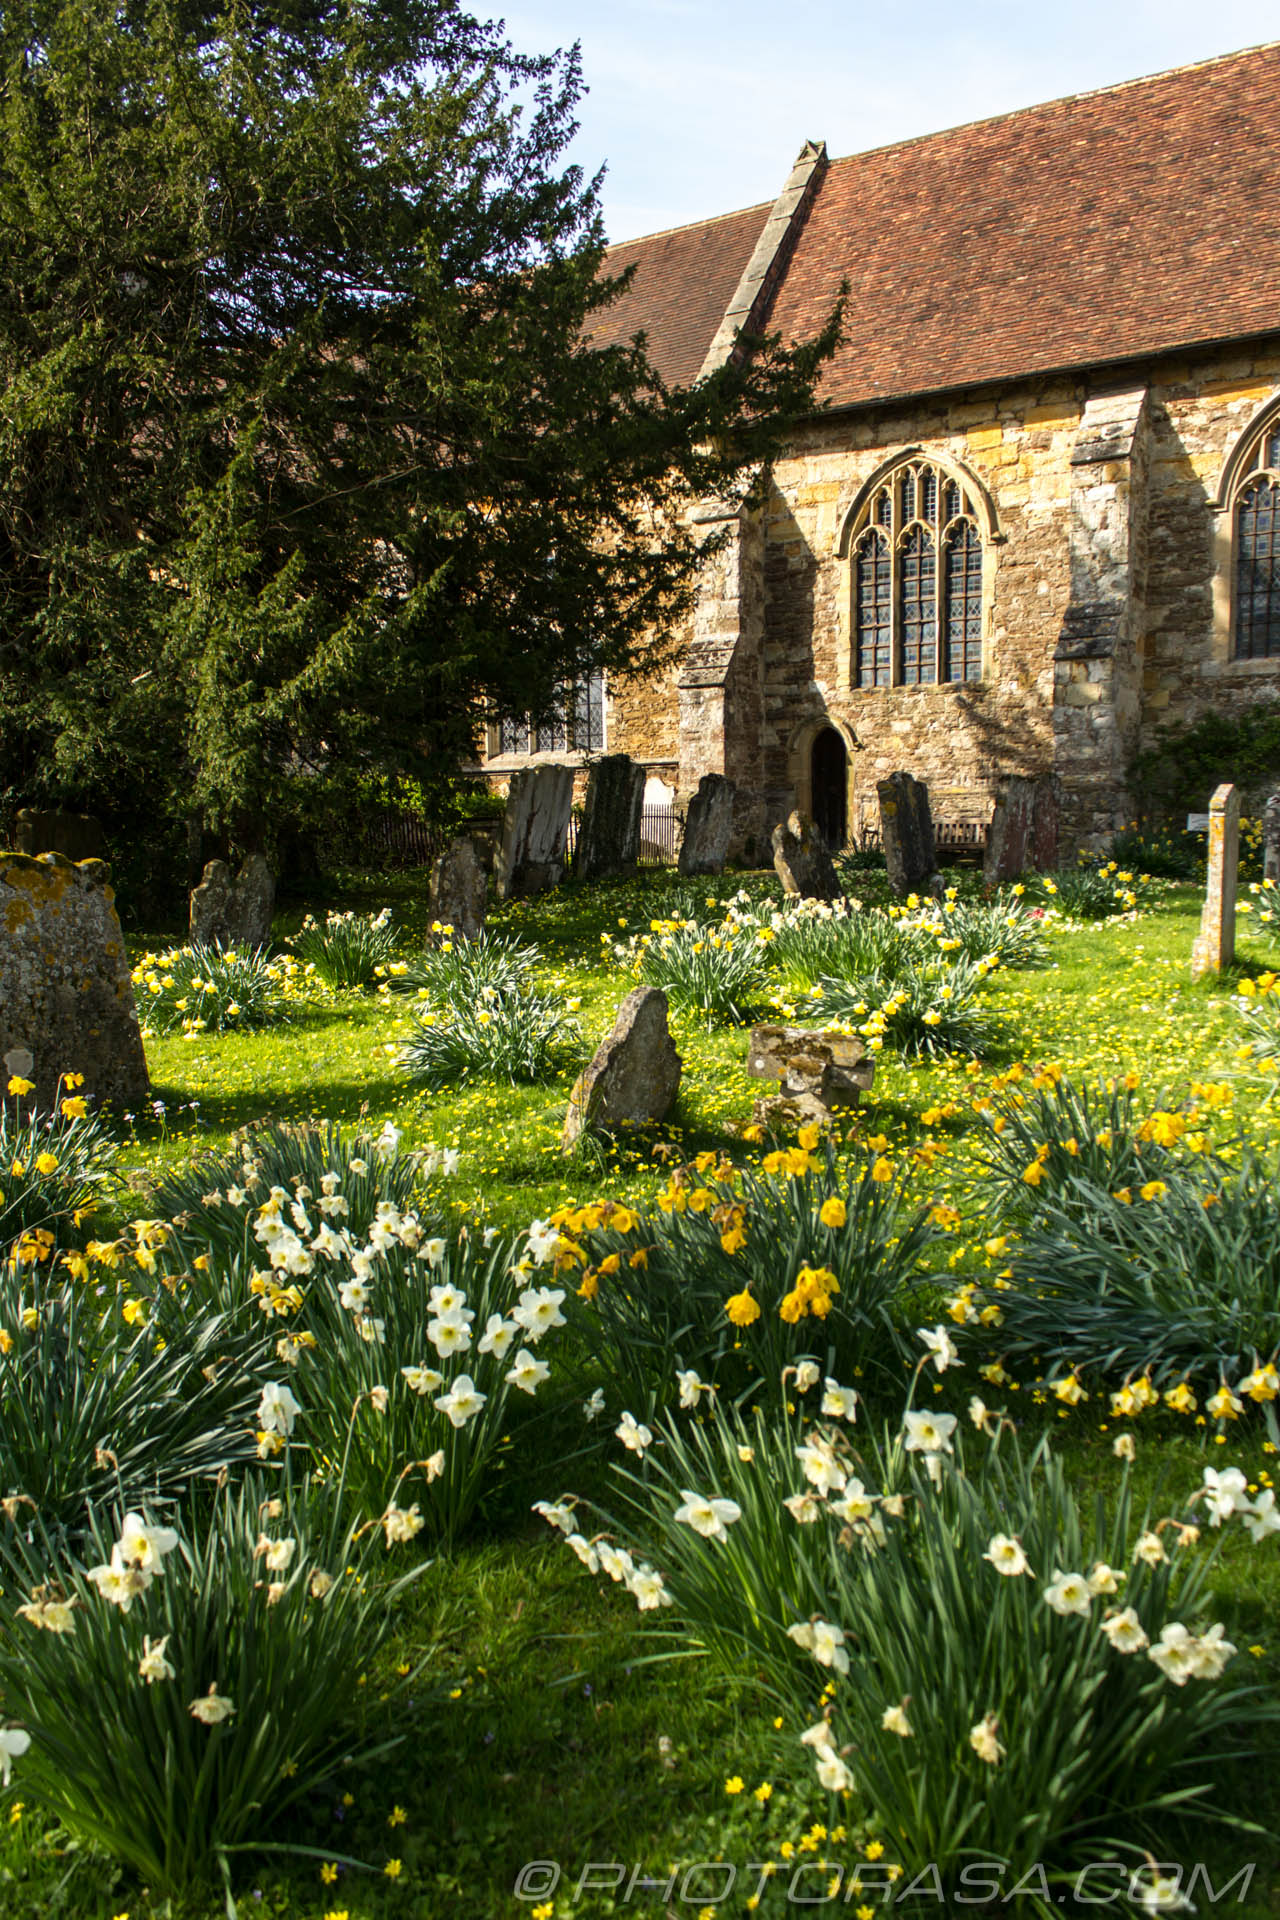 http://photorasa.com/saints-church-staplehurst-kent/daffodils-at-the-side-of-the-church/